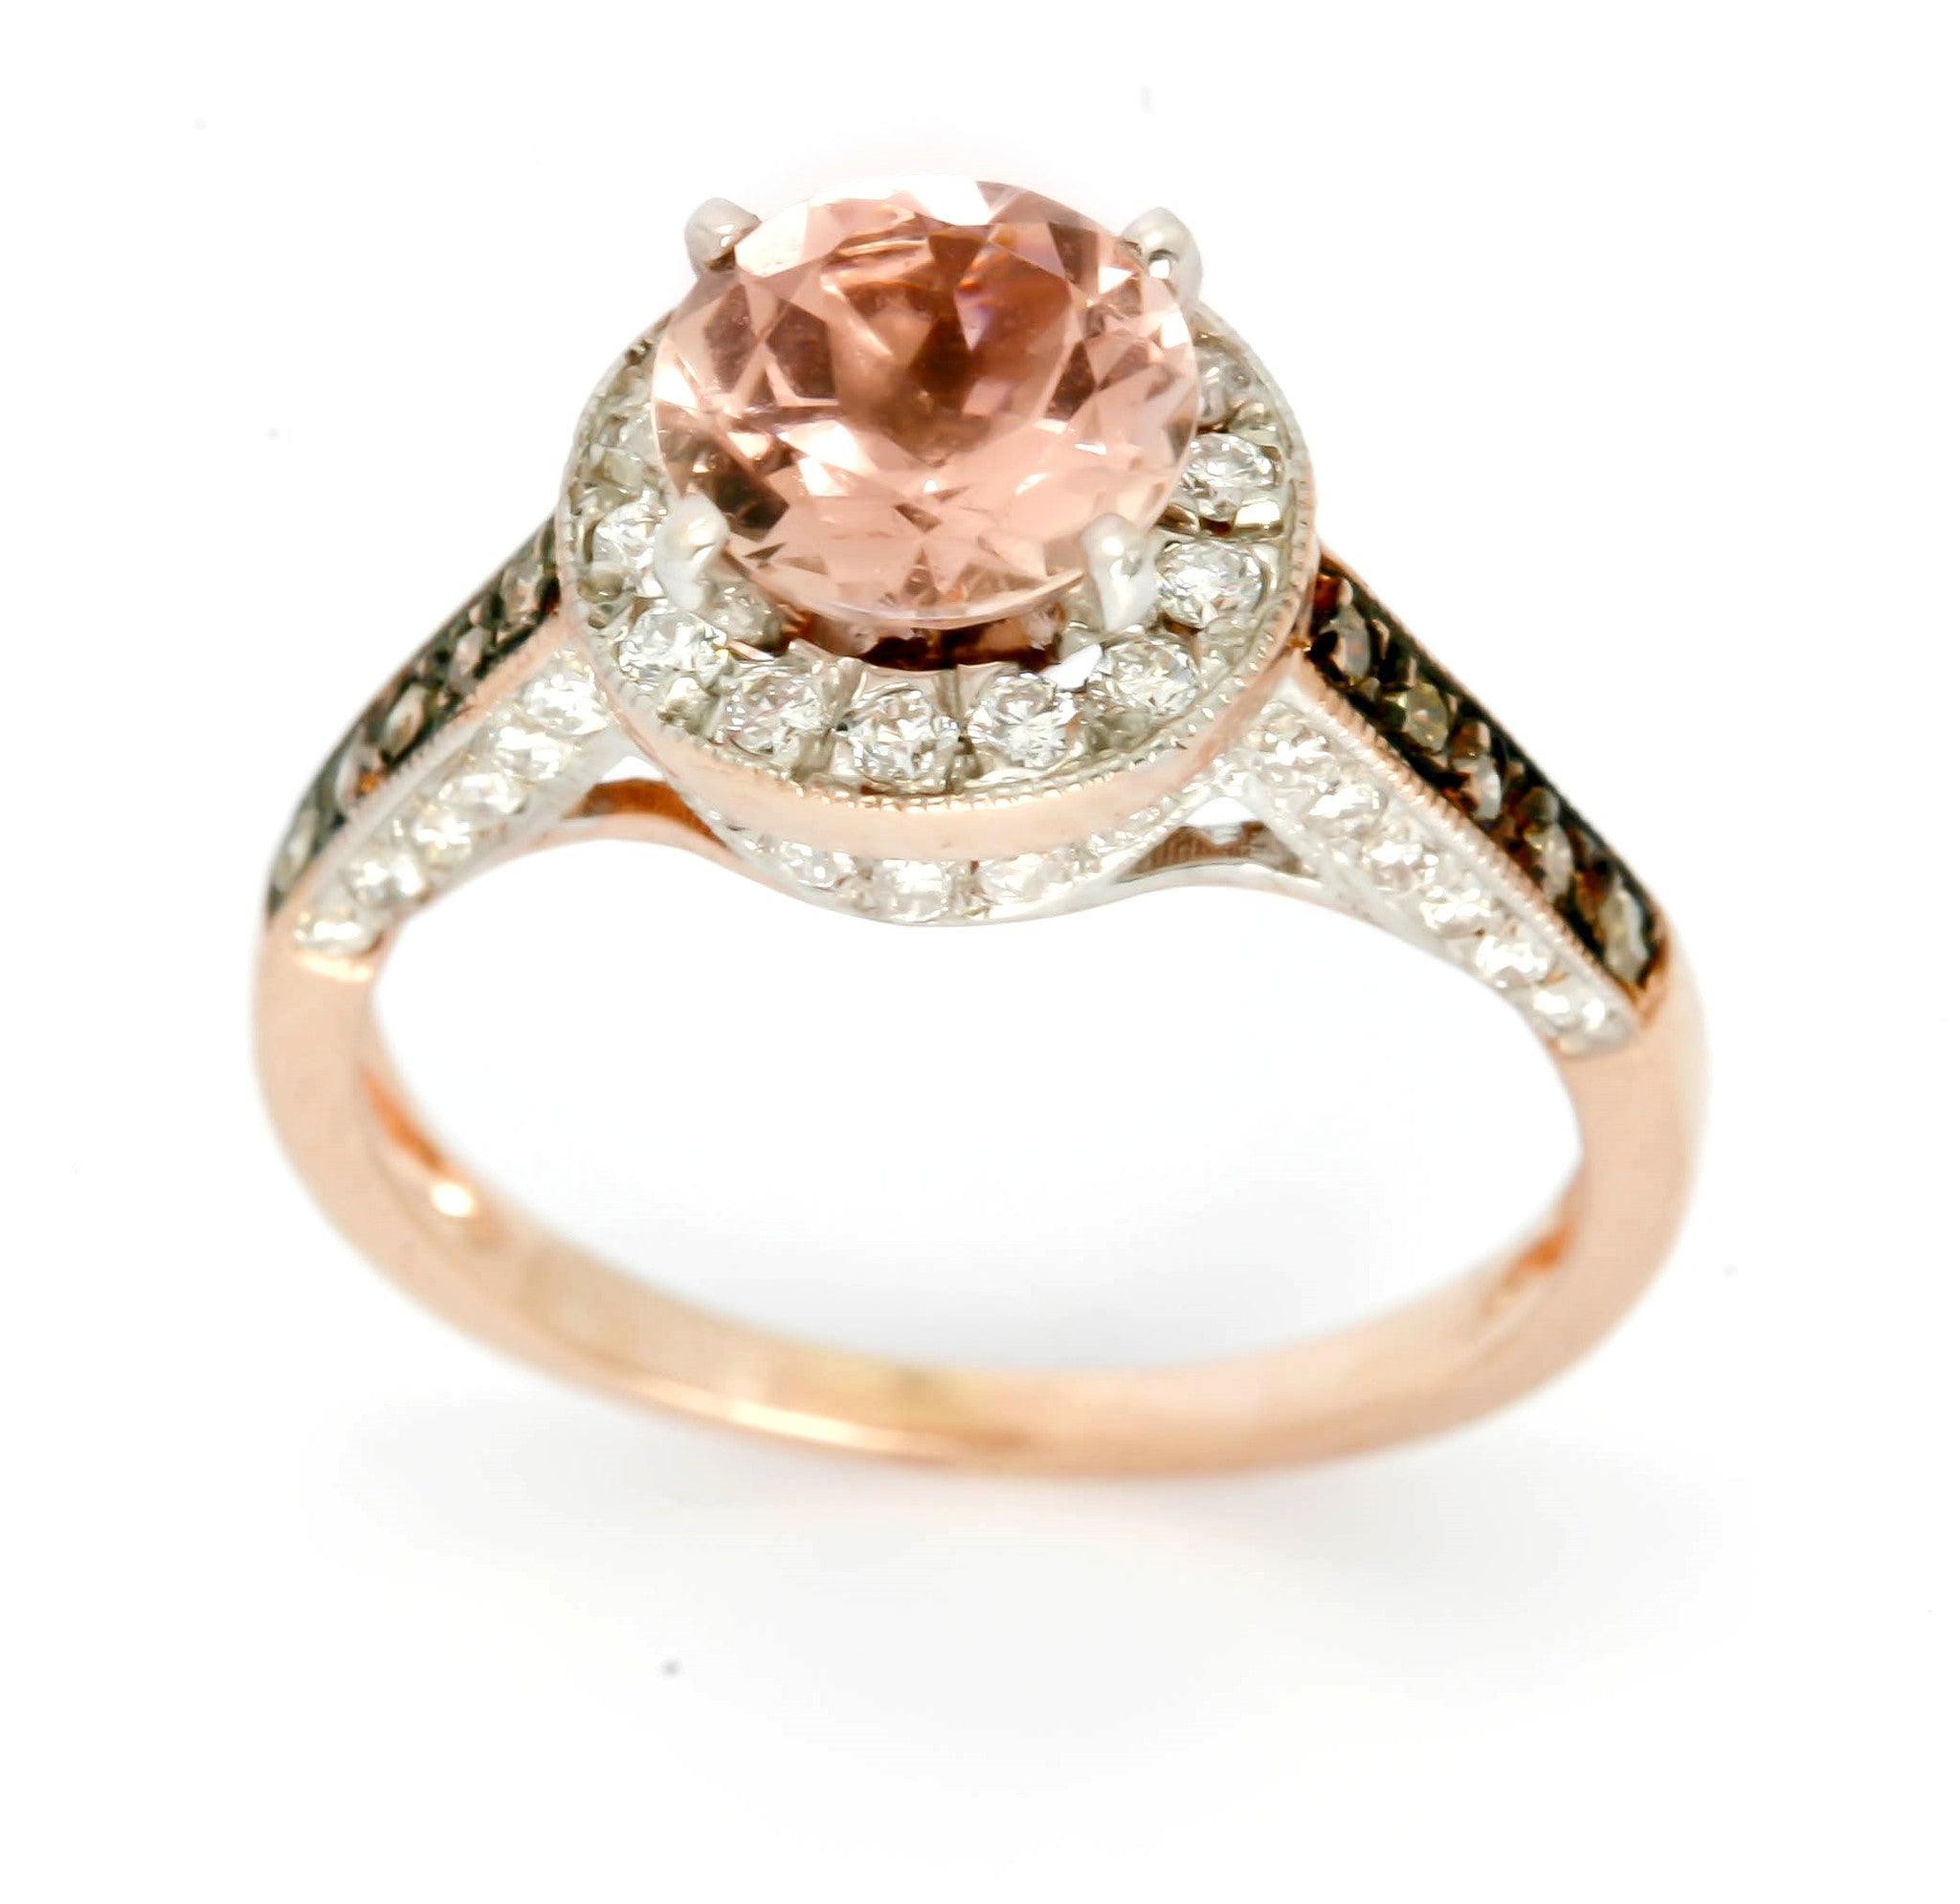 south ringsexclusivity rings african diamond engagement ring beautiful wedding morganite jewellery by design and designer